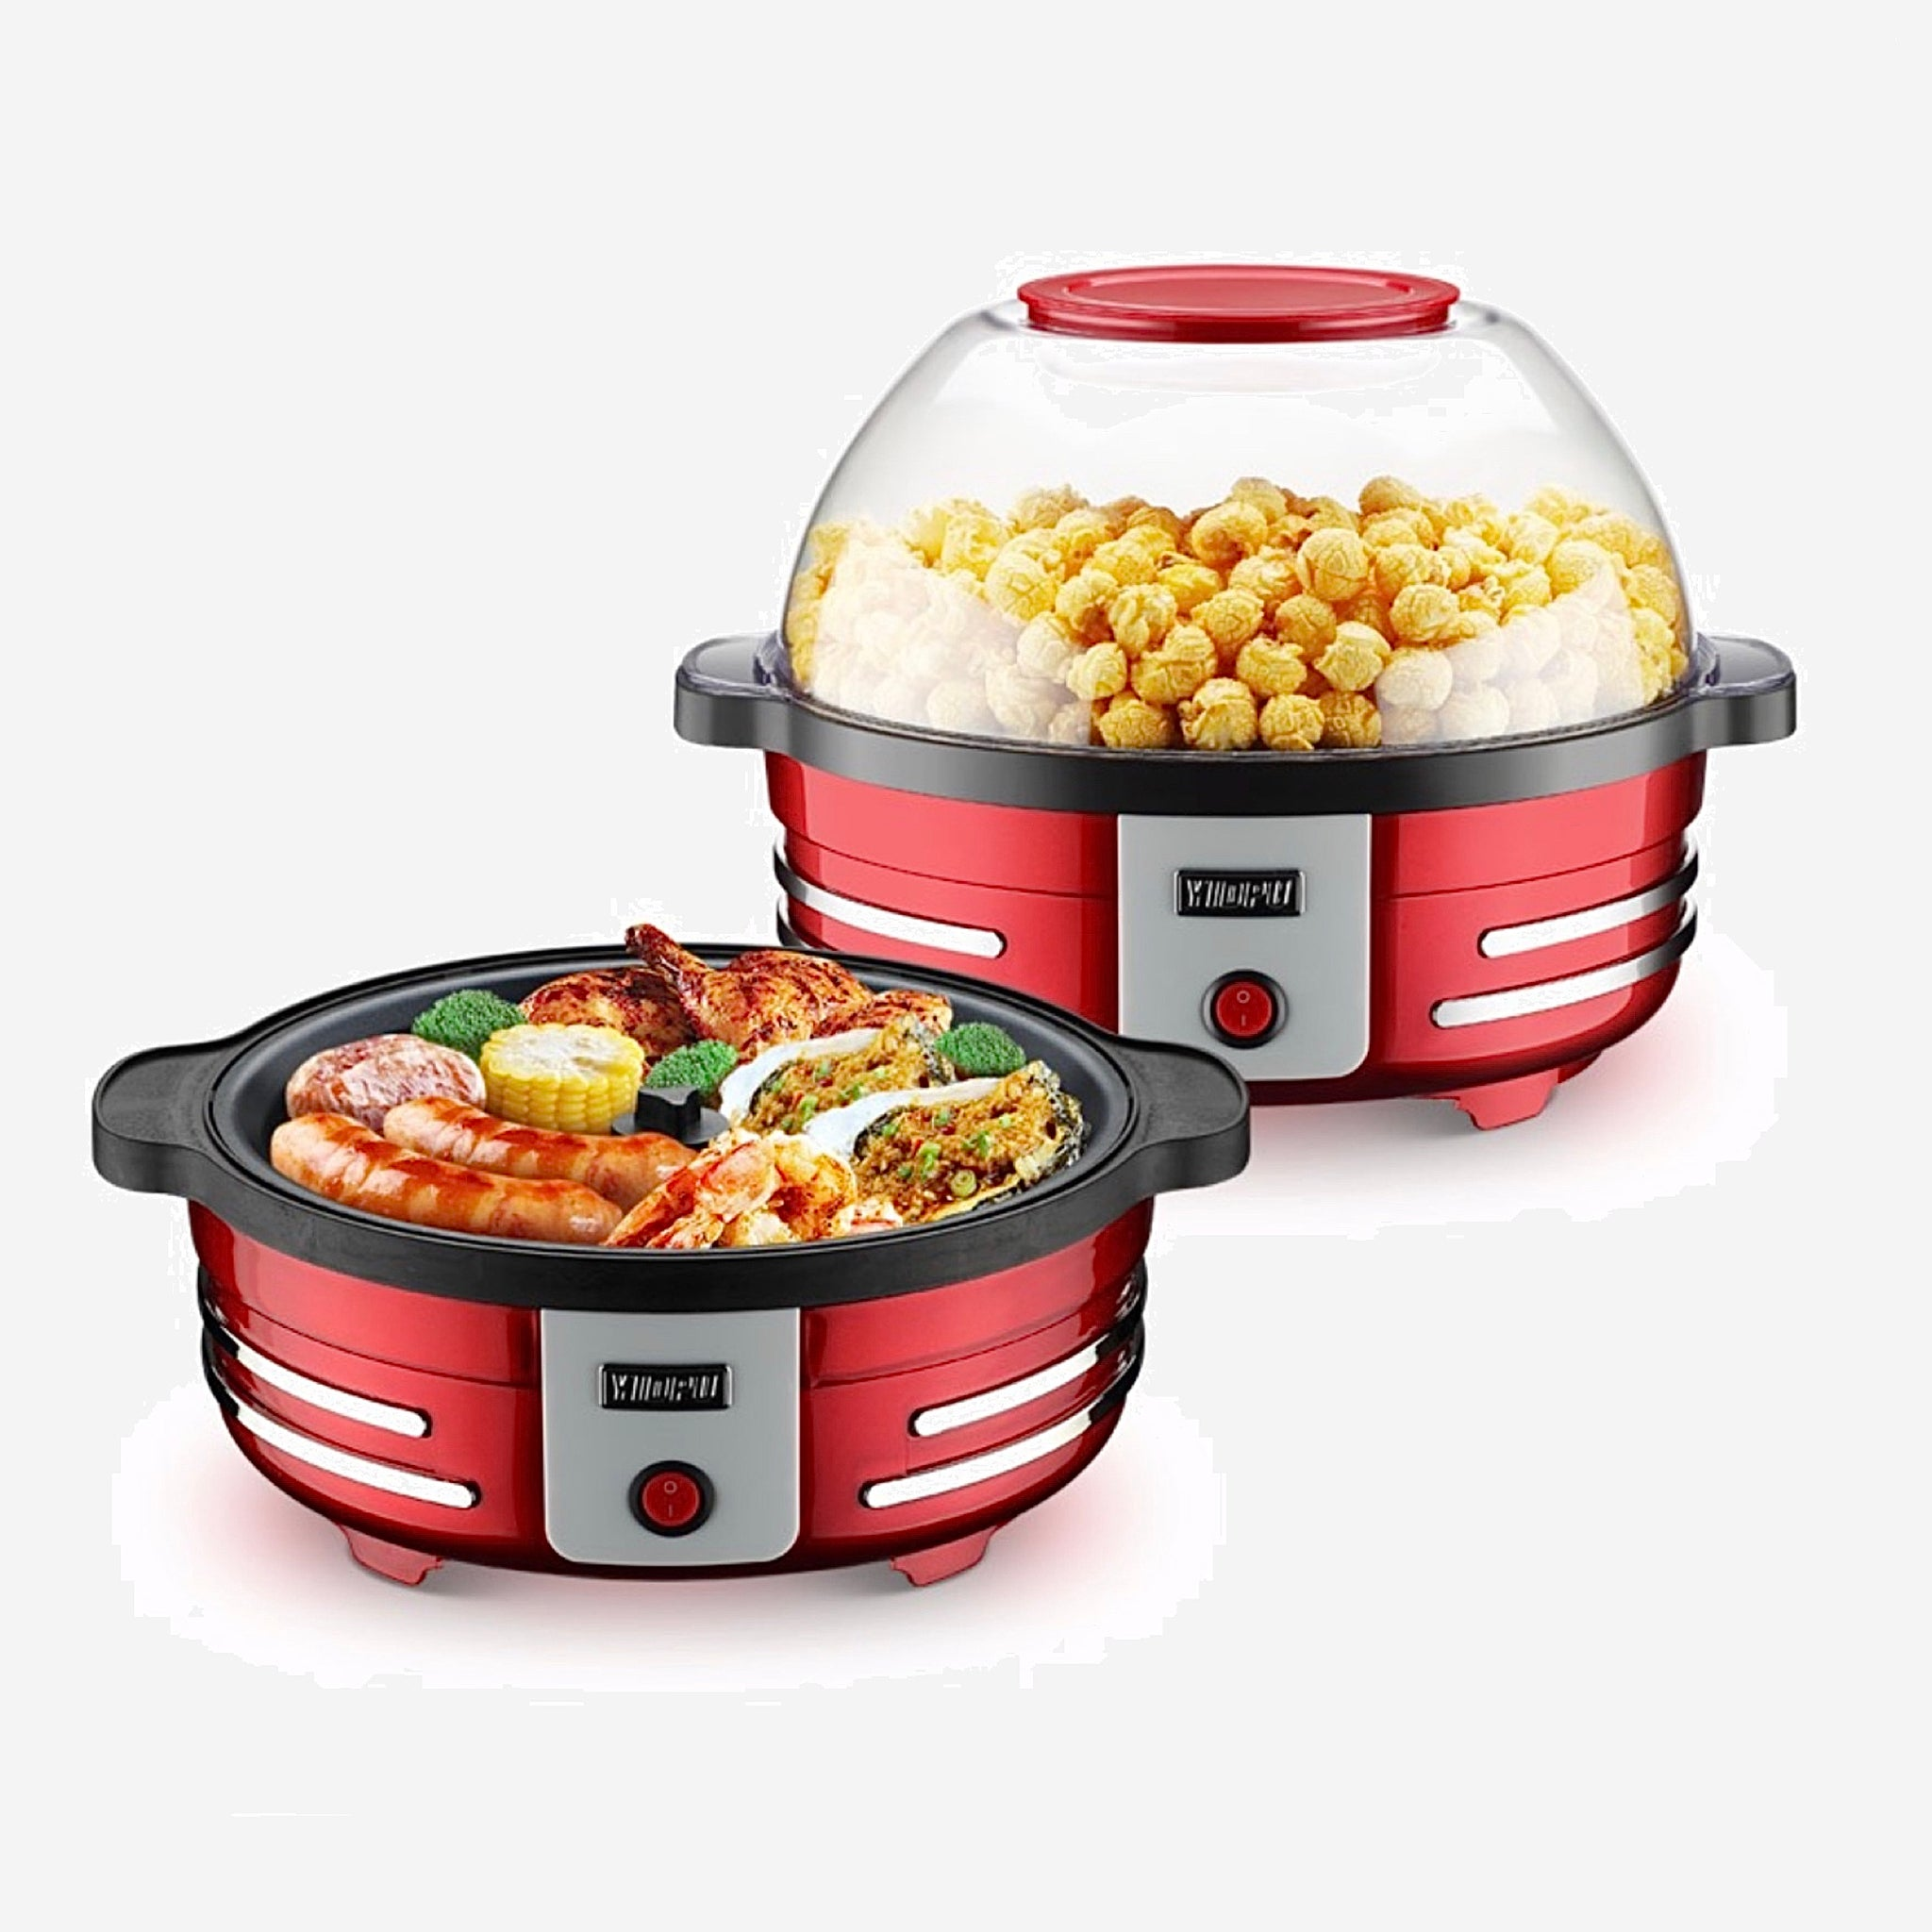 2-in-1 Popcorn Maker BBQ Machine Fully Automatic Household Small 5L Electric Popcorn Machine Food Grade Non-stick Pot Party Corn Barbecue Trend